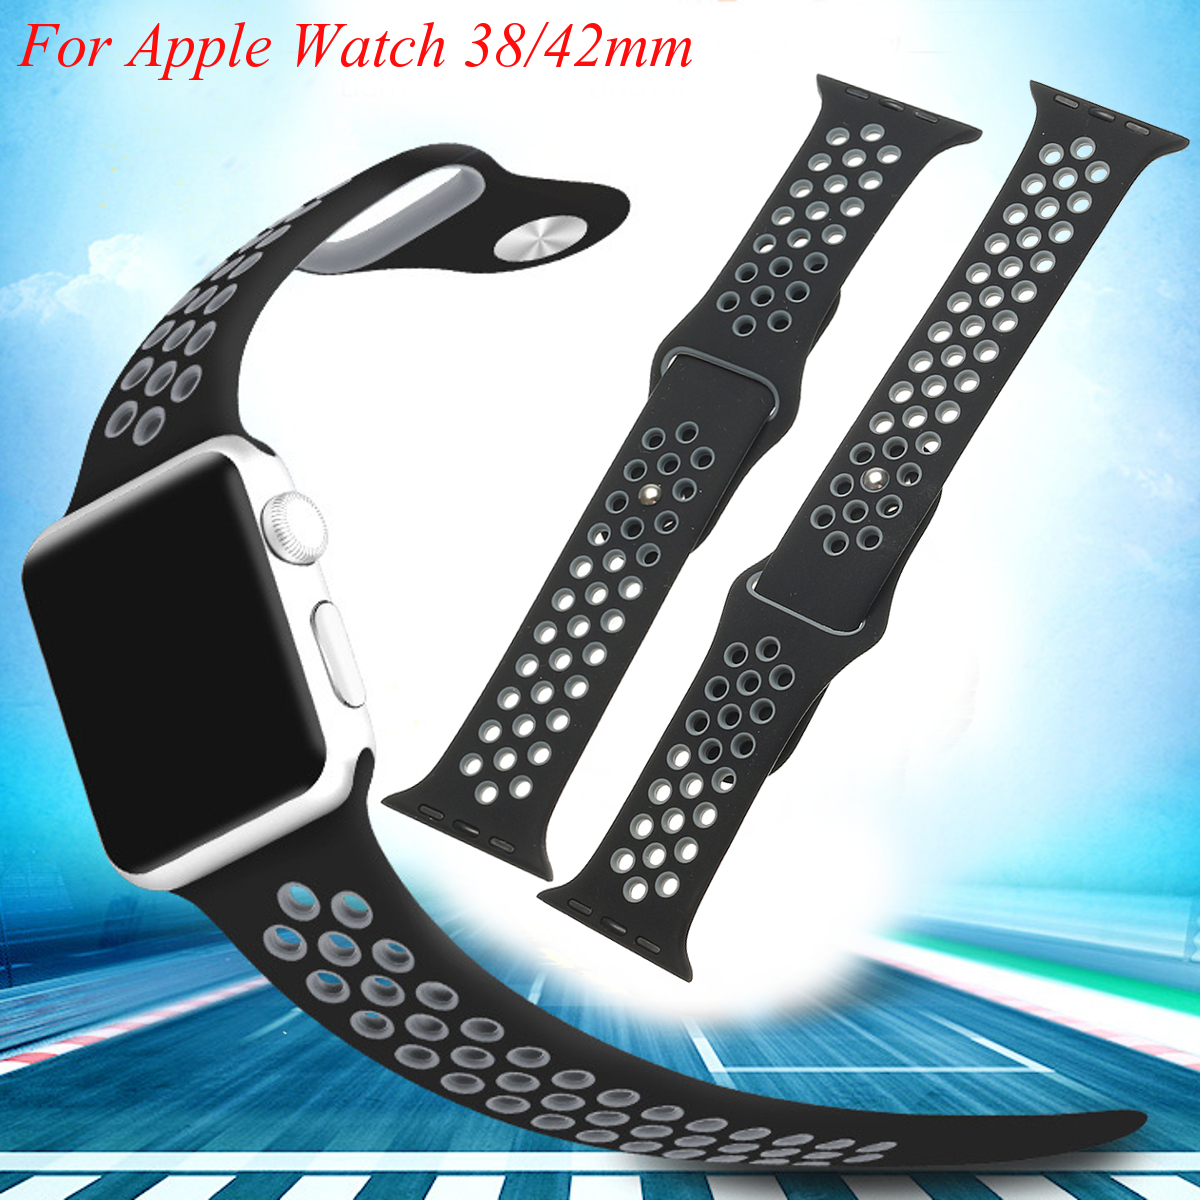 Silicone Watch Band Wrist Strap for Apple Watch 2 Series